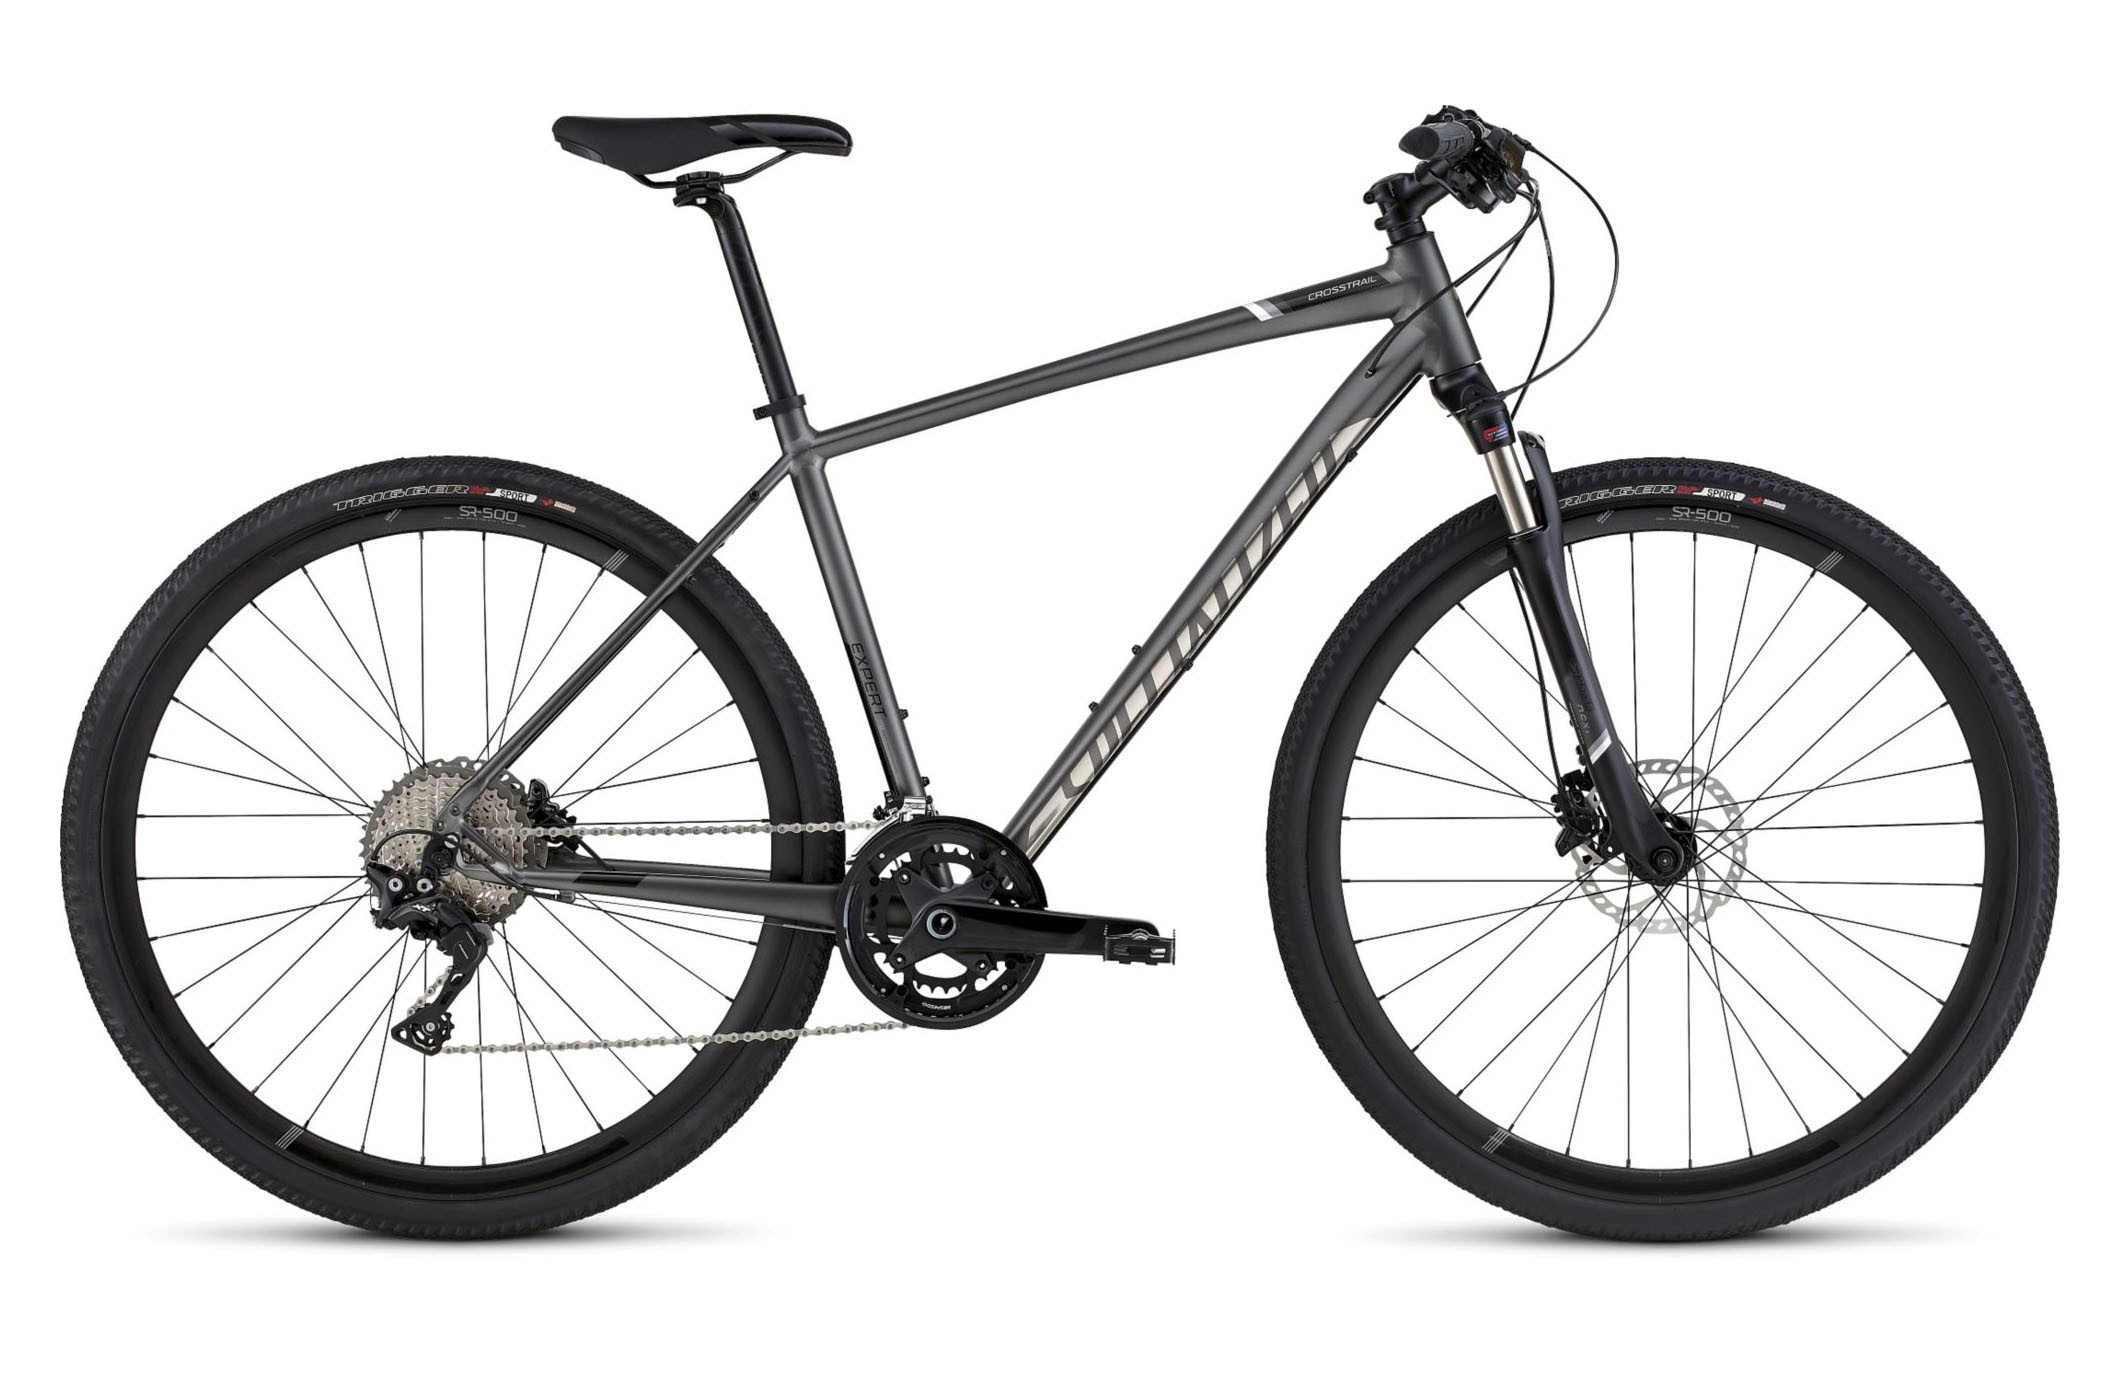 Дорожный велосипед Specialized Crosstrail Expert Disc (2016)